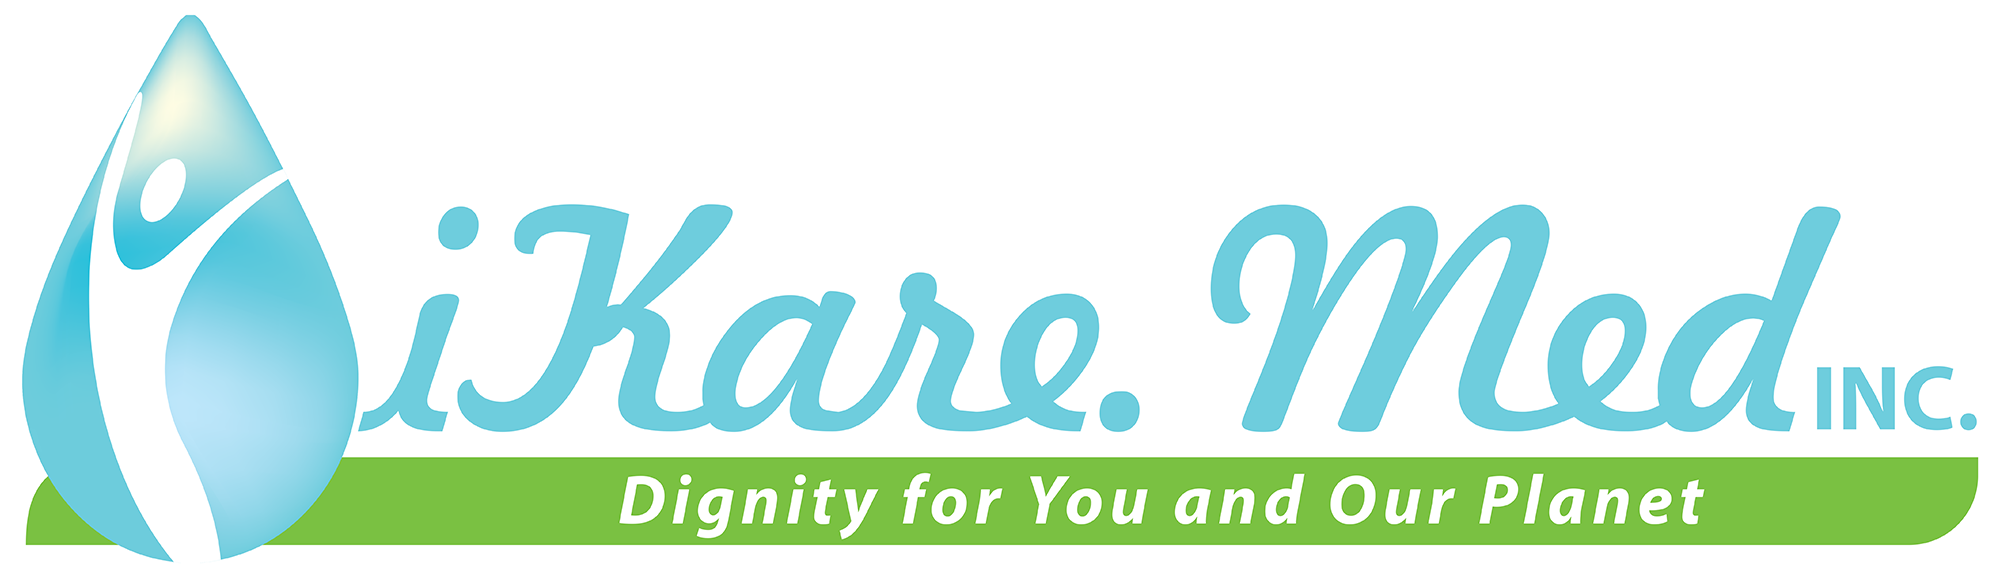 Specializing in comfortable, reusable and innovative incontinence devices for women and men. An environmentally conscious company, iKare.Med strives to provide the highest quality products made from latex free, recyclable and biodegradable materials.